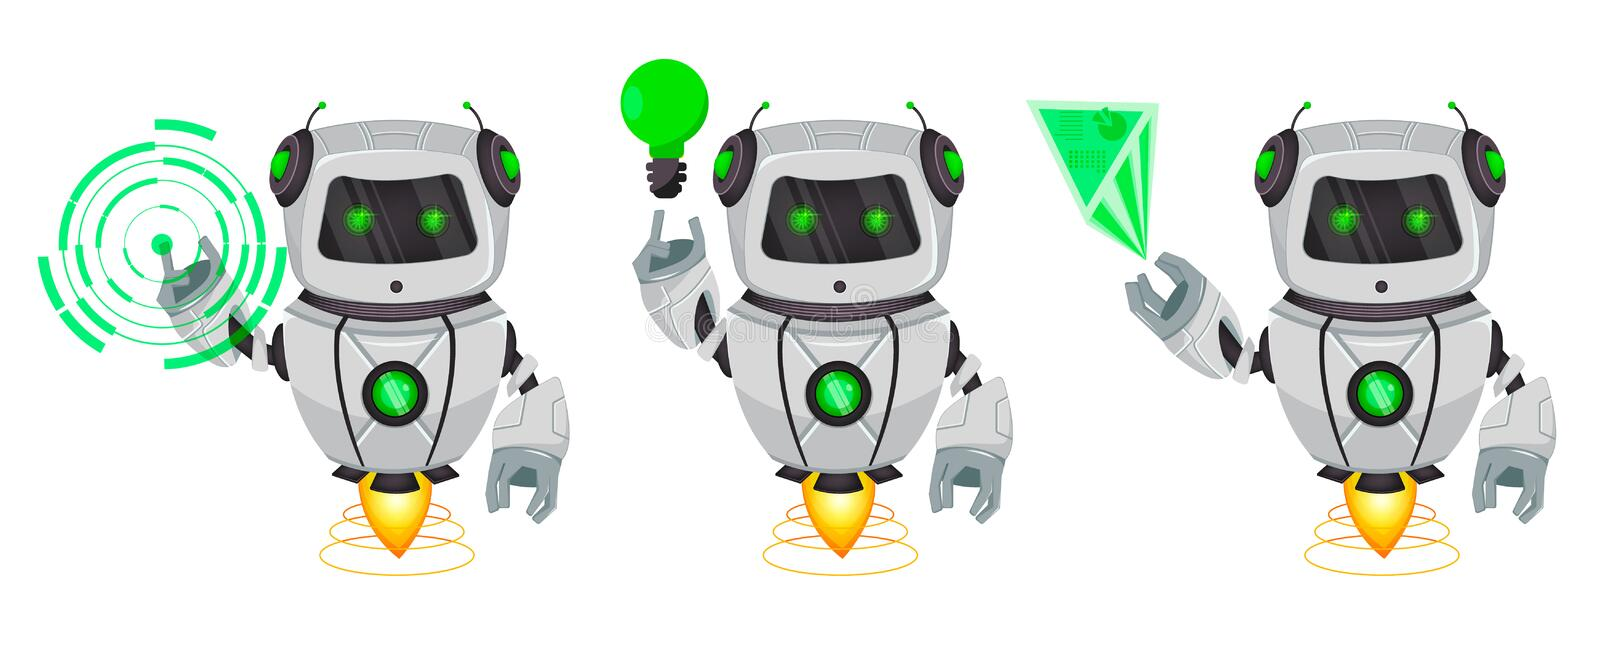 Robot with artificial intelligence, bot, set of three poses. Funny cartoon character points on hologram and shows on green lamp. stock illustration